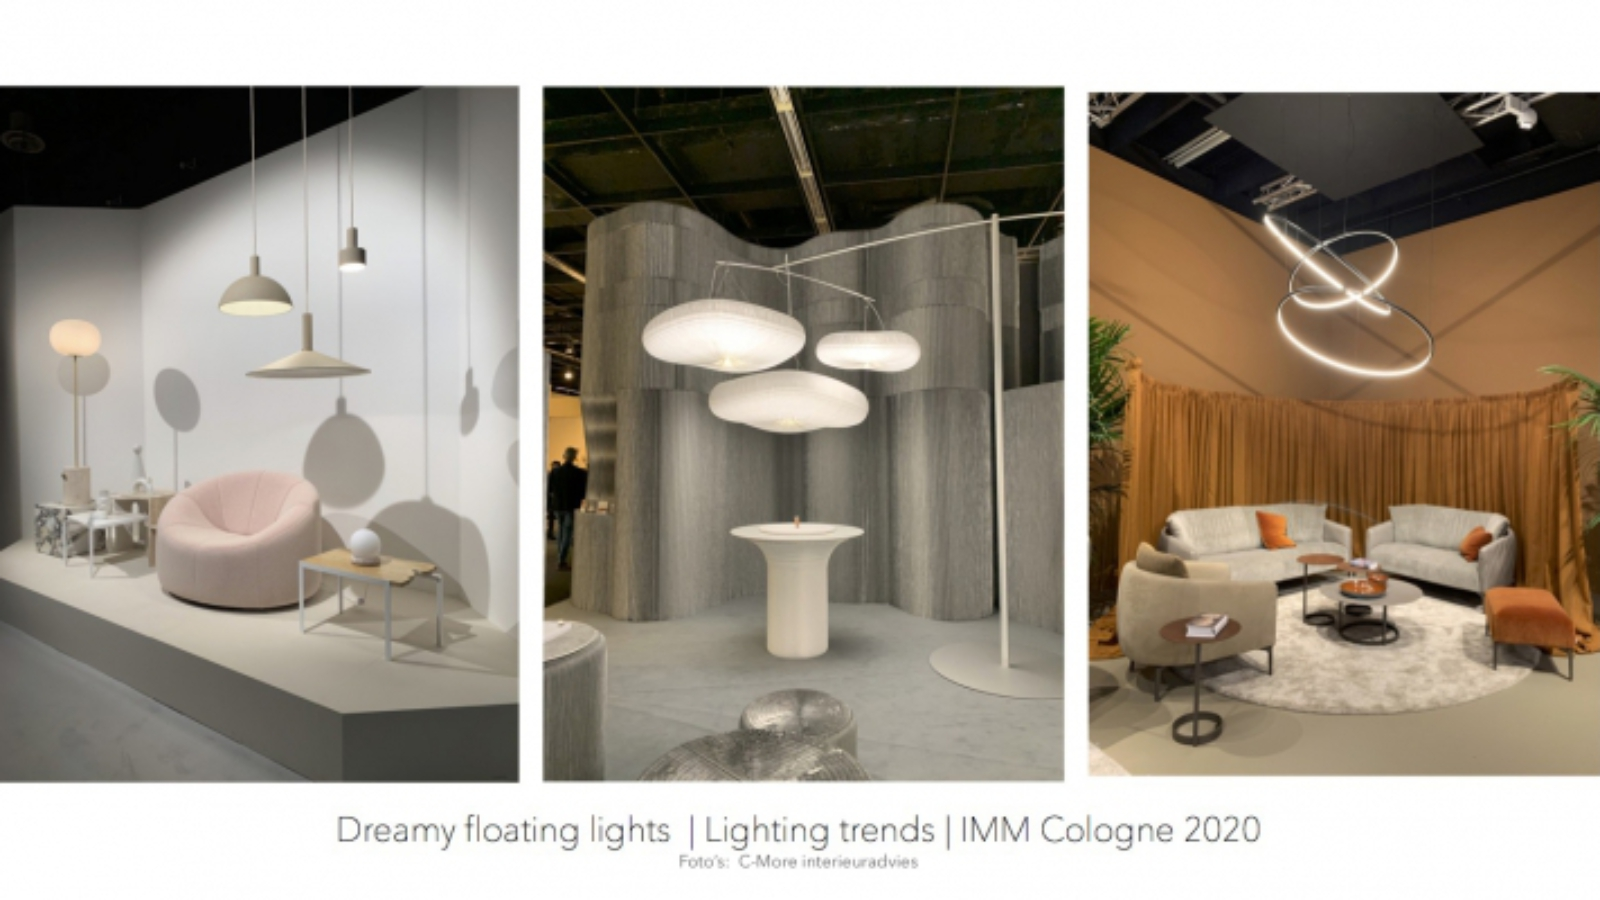 trend-1-lighting-trends-imm-cologne-2020-dreamy-floating-lightsby-c-more-medium